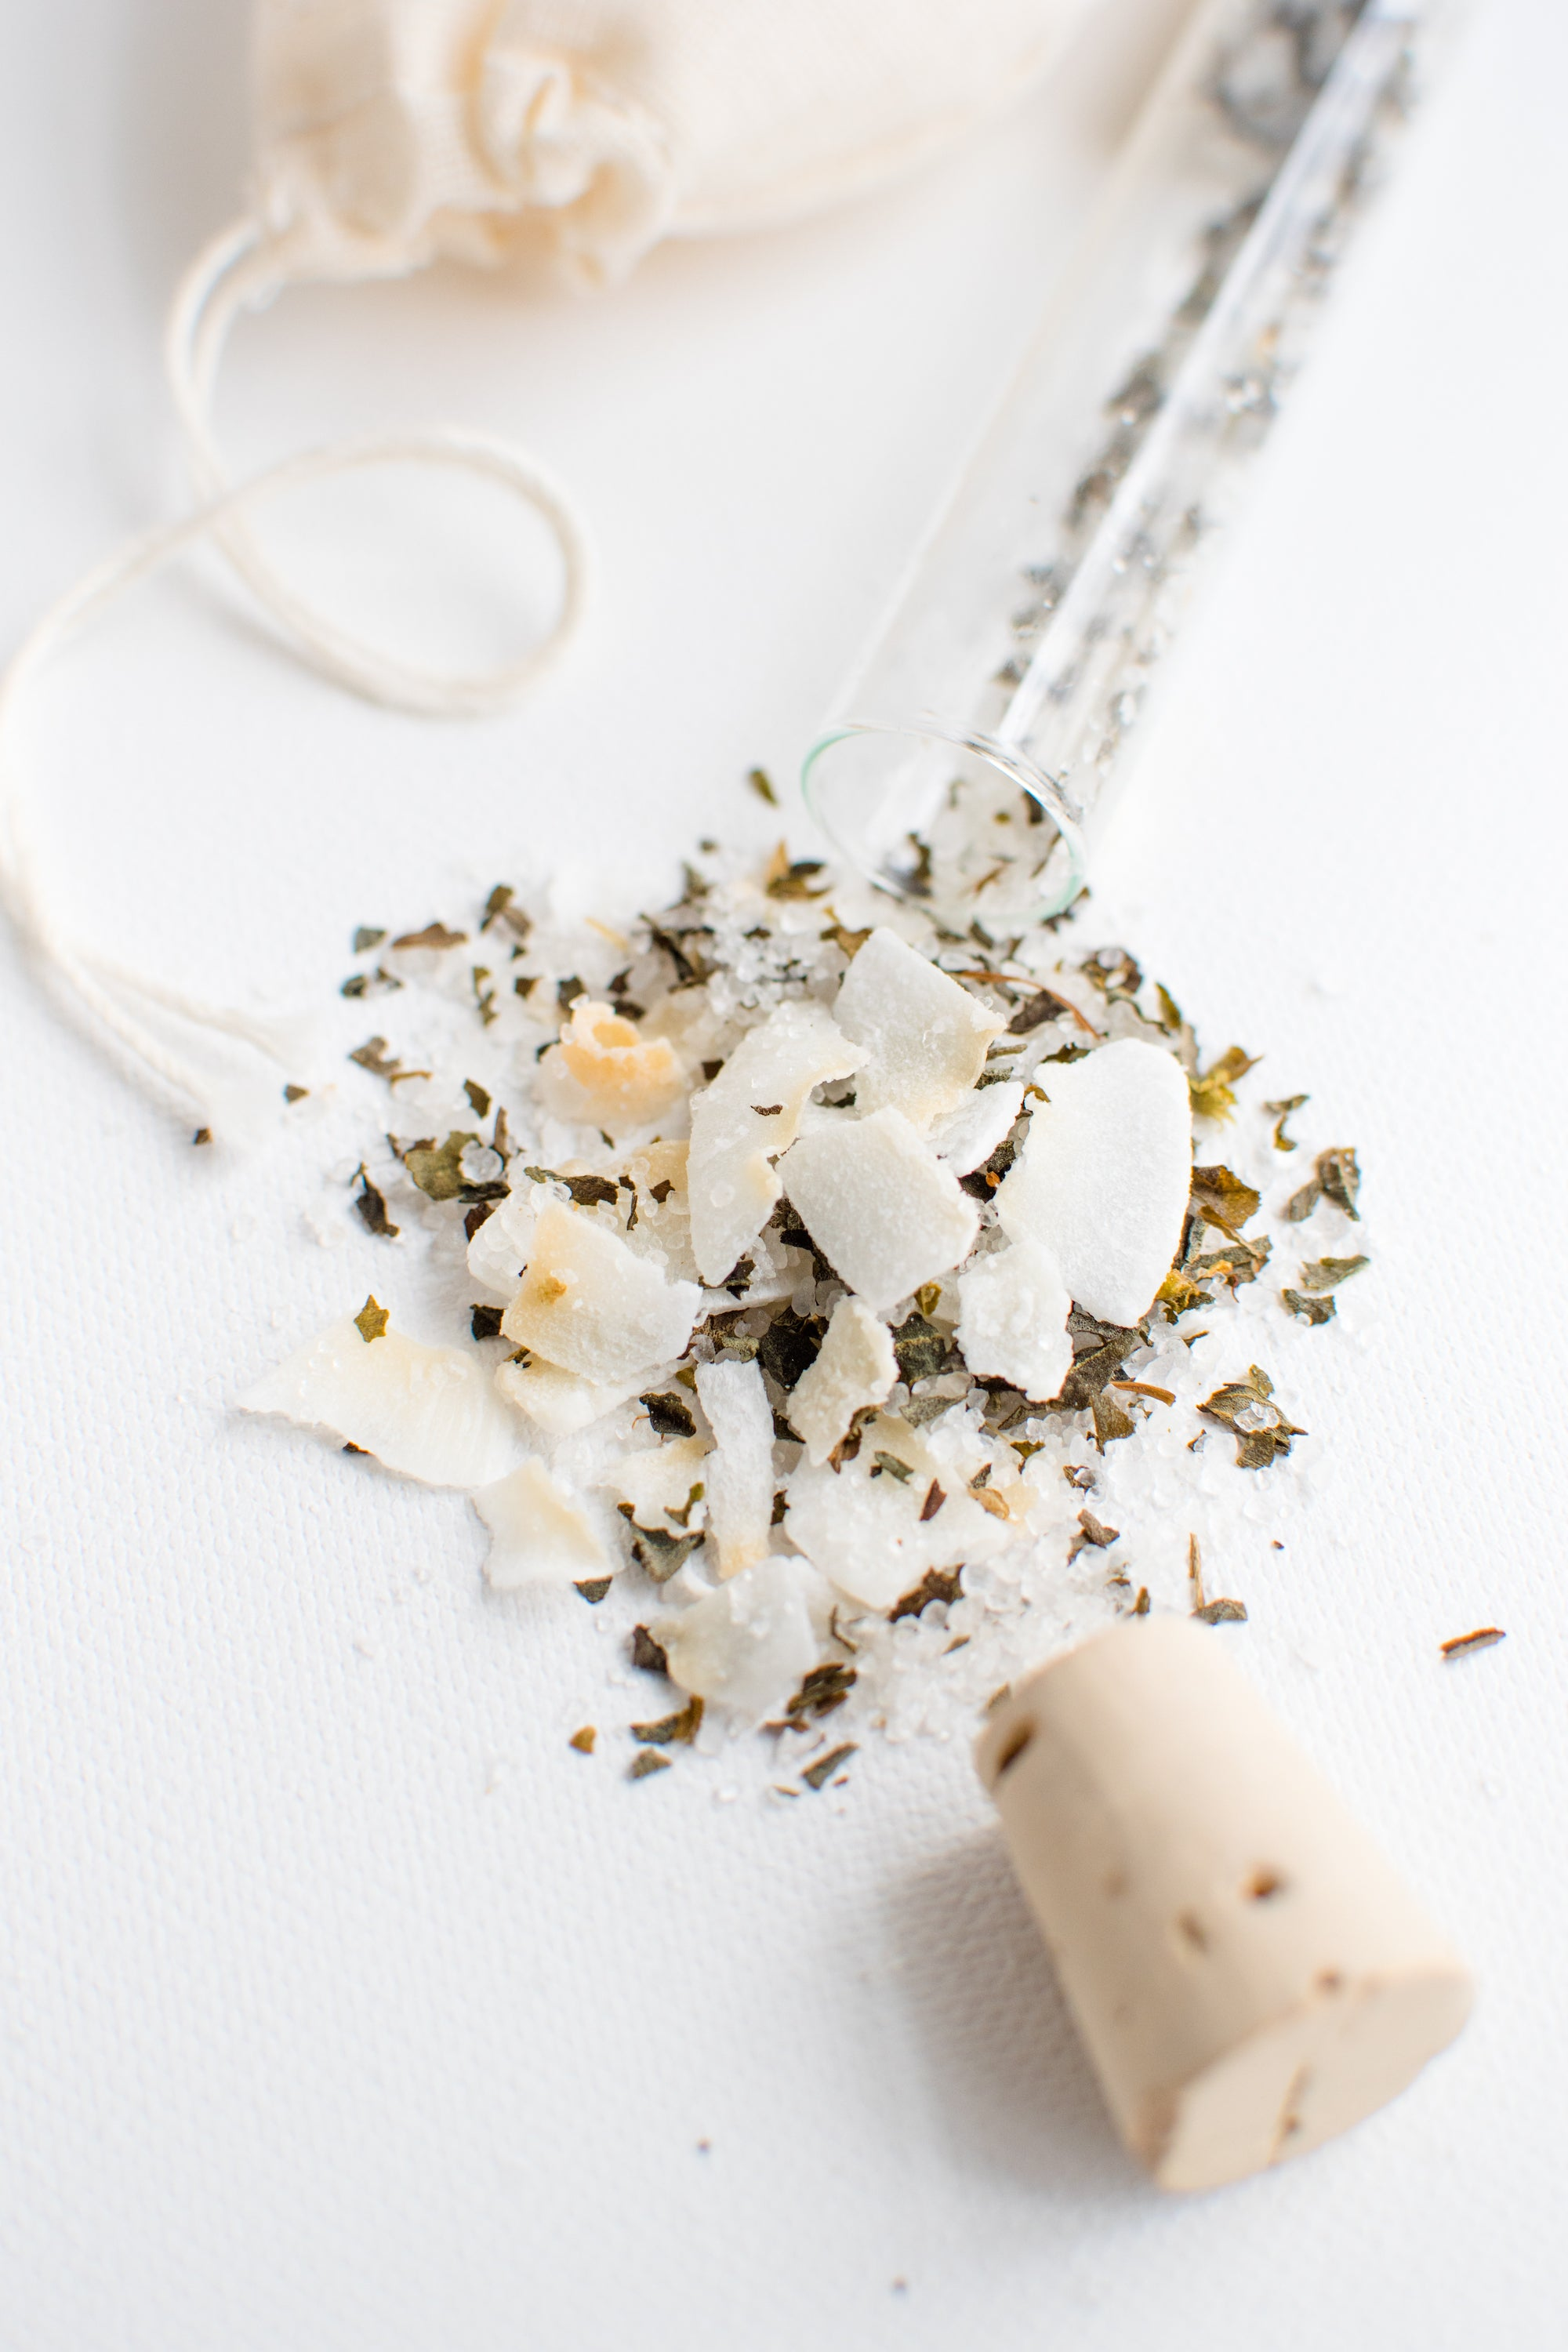 Truly Aesthetic Enliven Coconut Basil Petite Bath Affirmations Bath Salts Ingredients Close Up